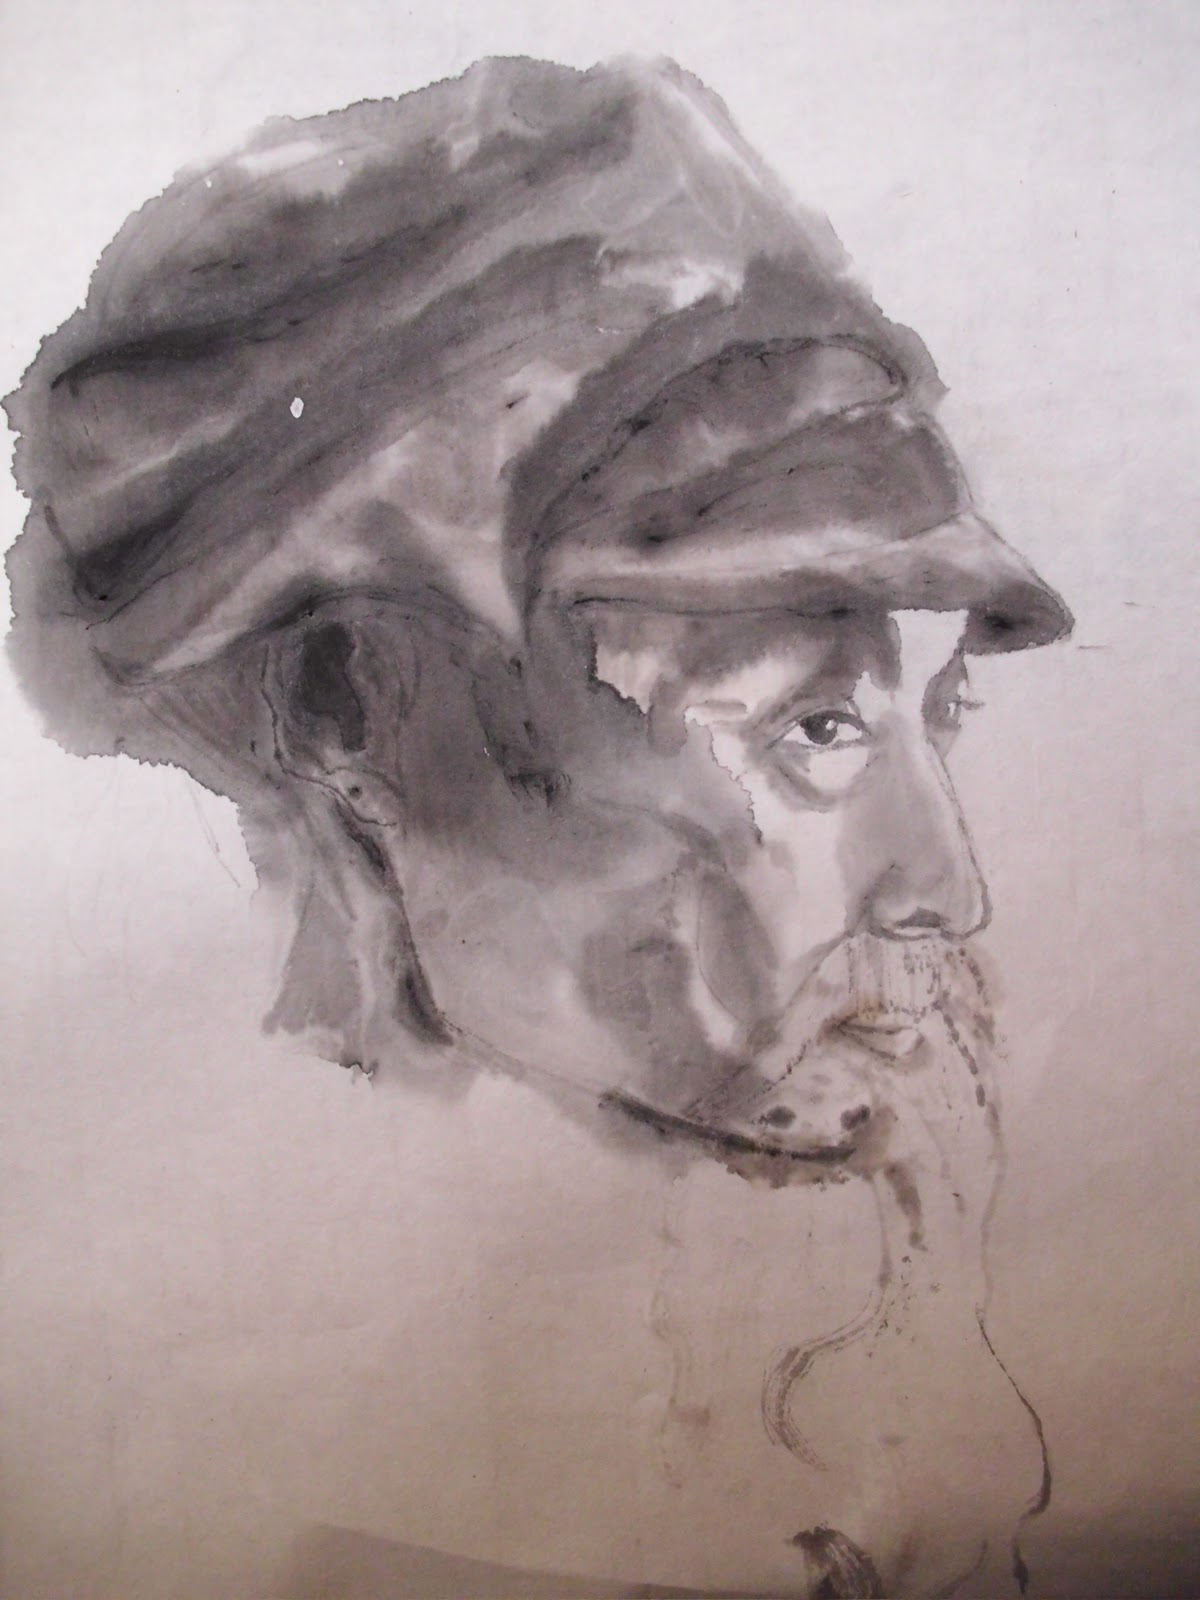 my first ink wash painting was a repainting of oneInk Wash Painting Of People